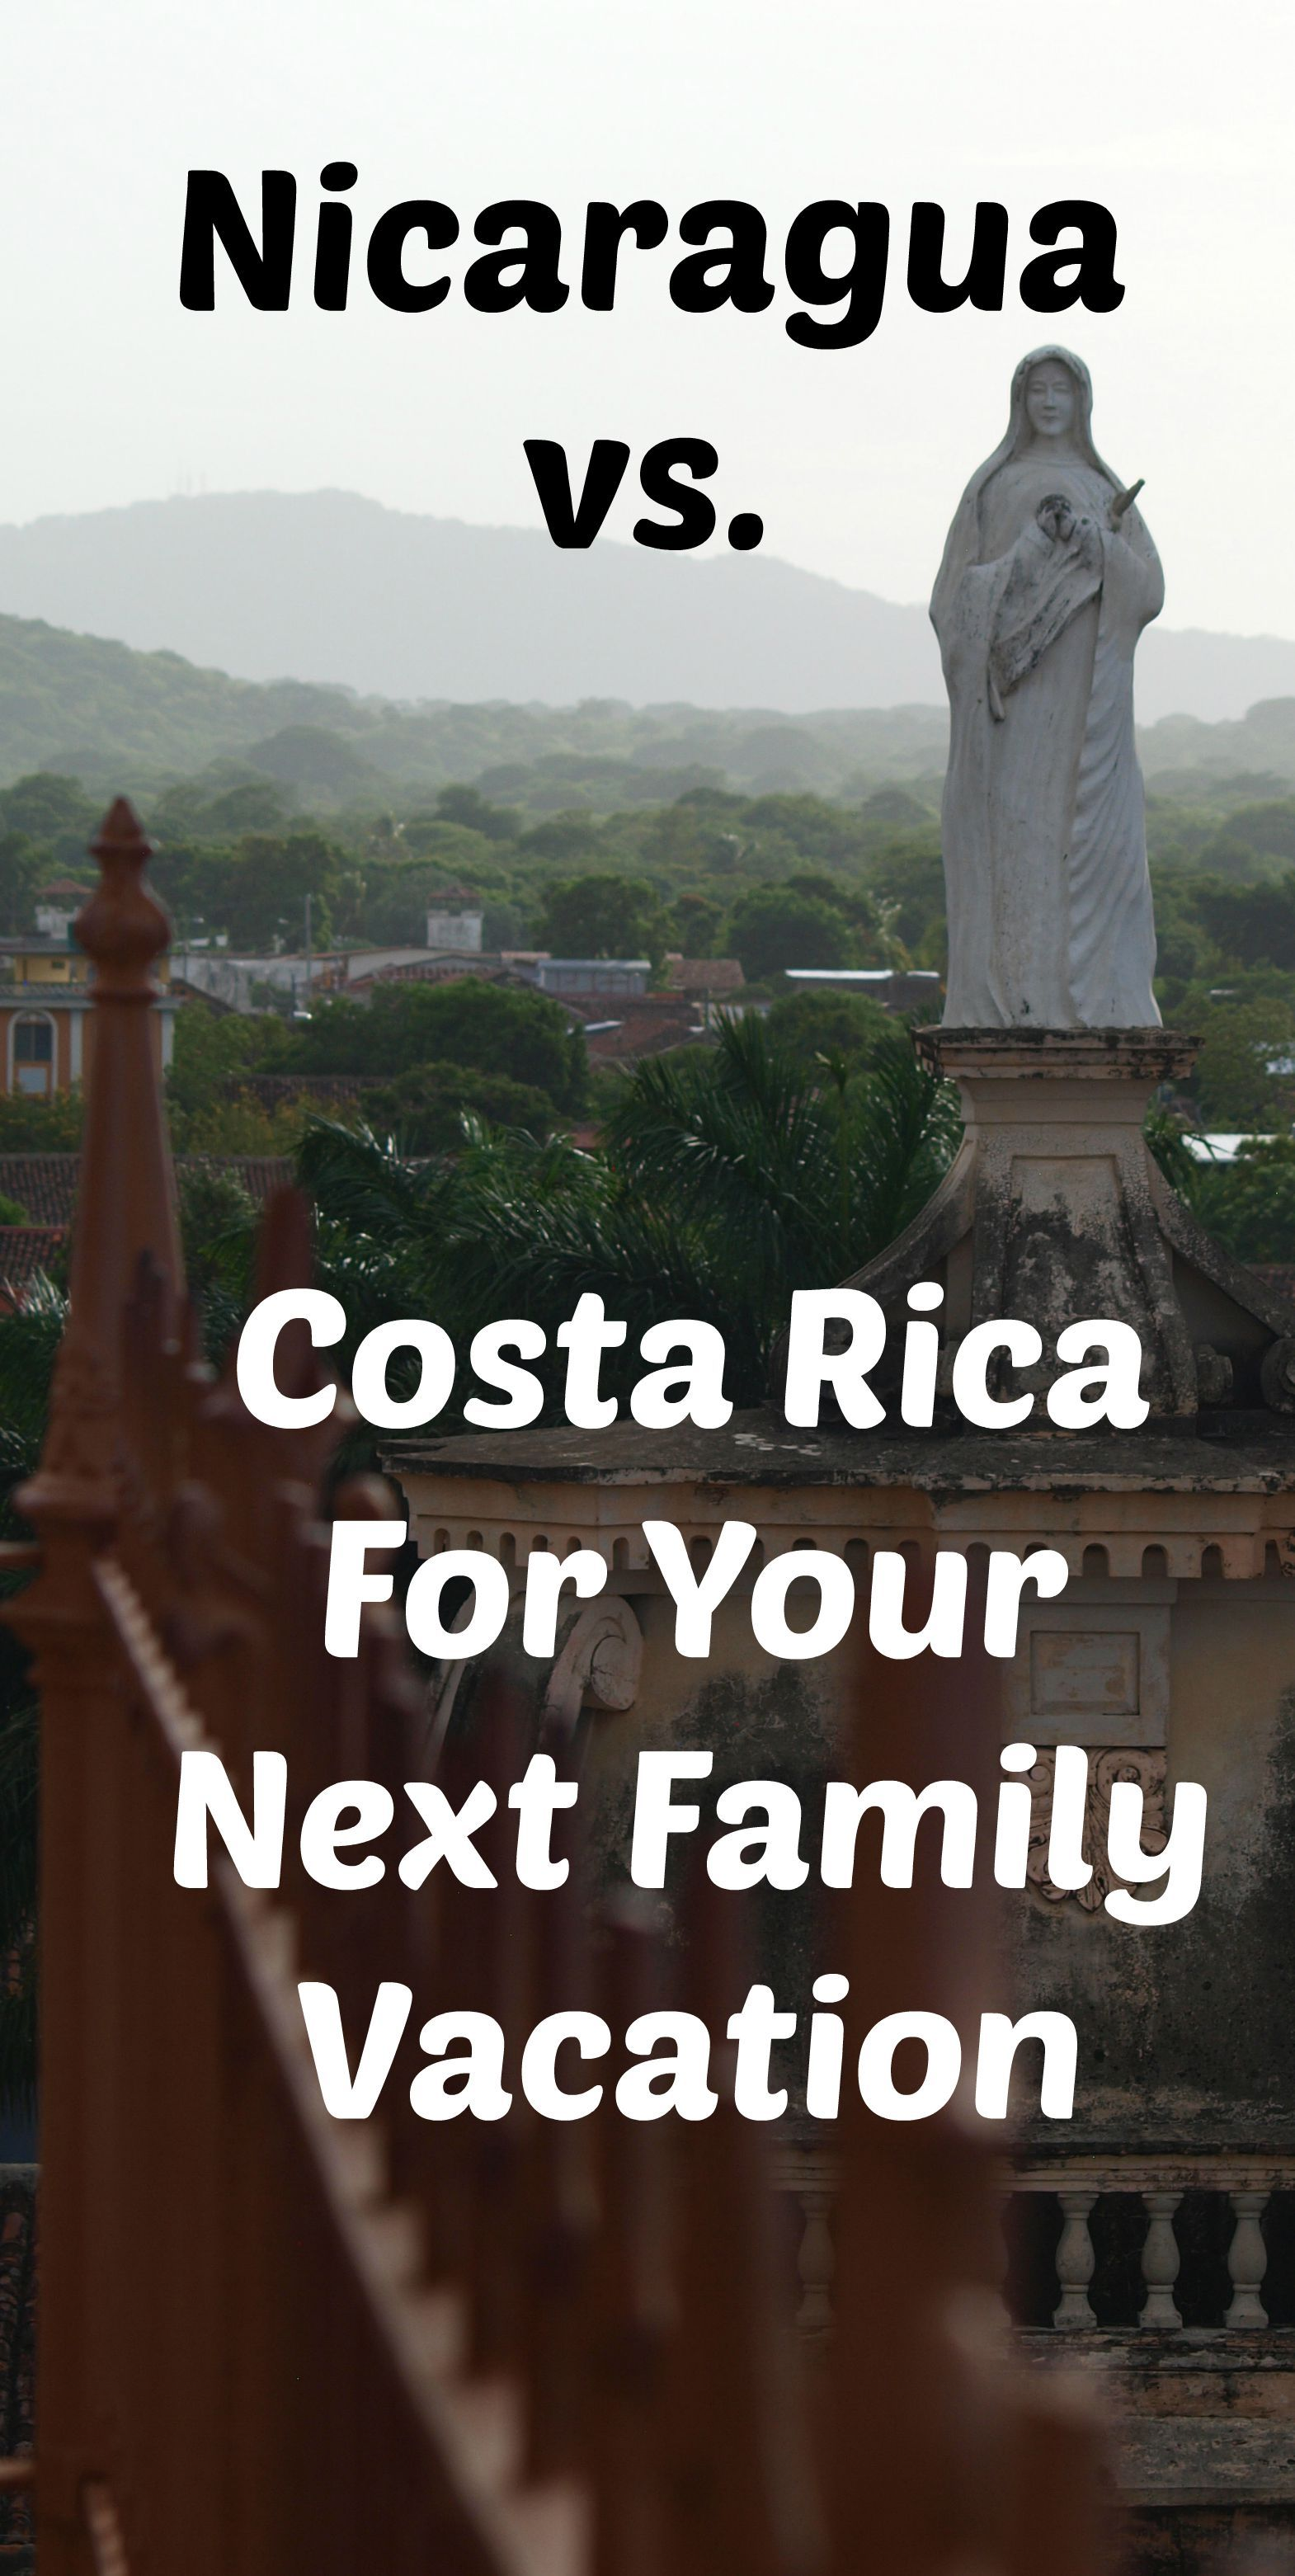 But It S True That Costa Rica And Nicaragua Do Share Some Significant Similarities As Travel